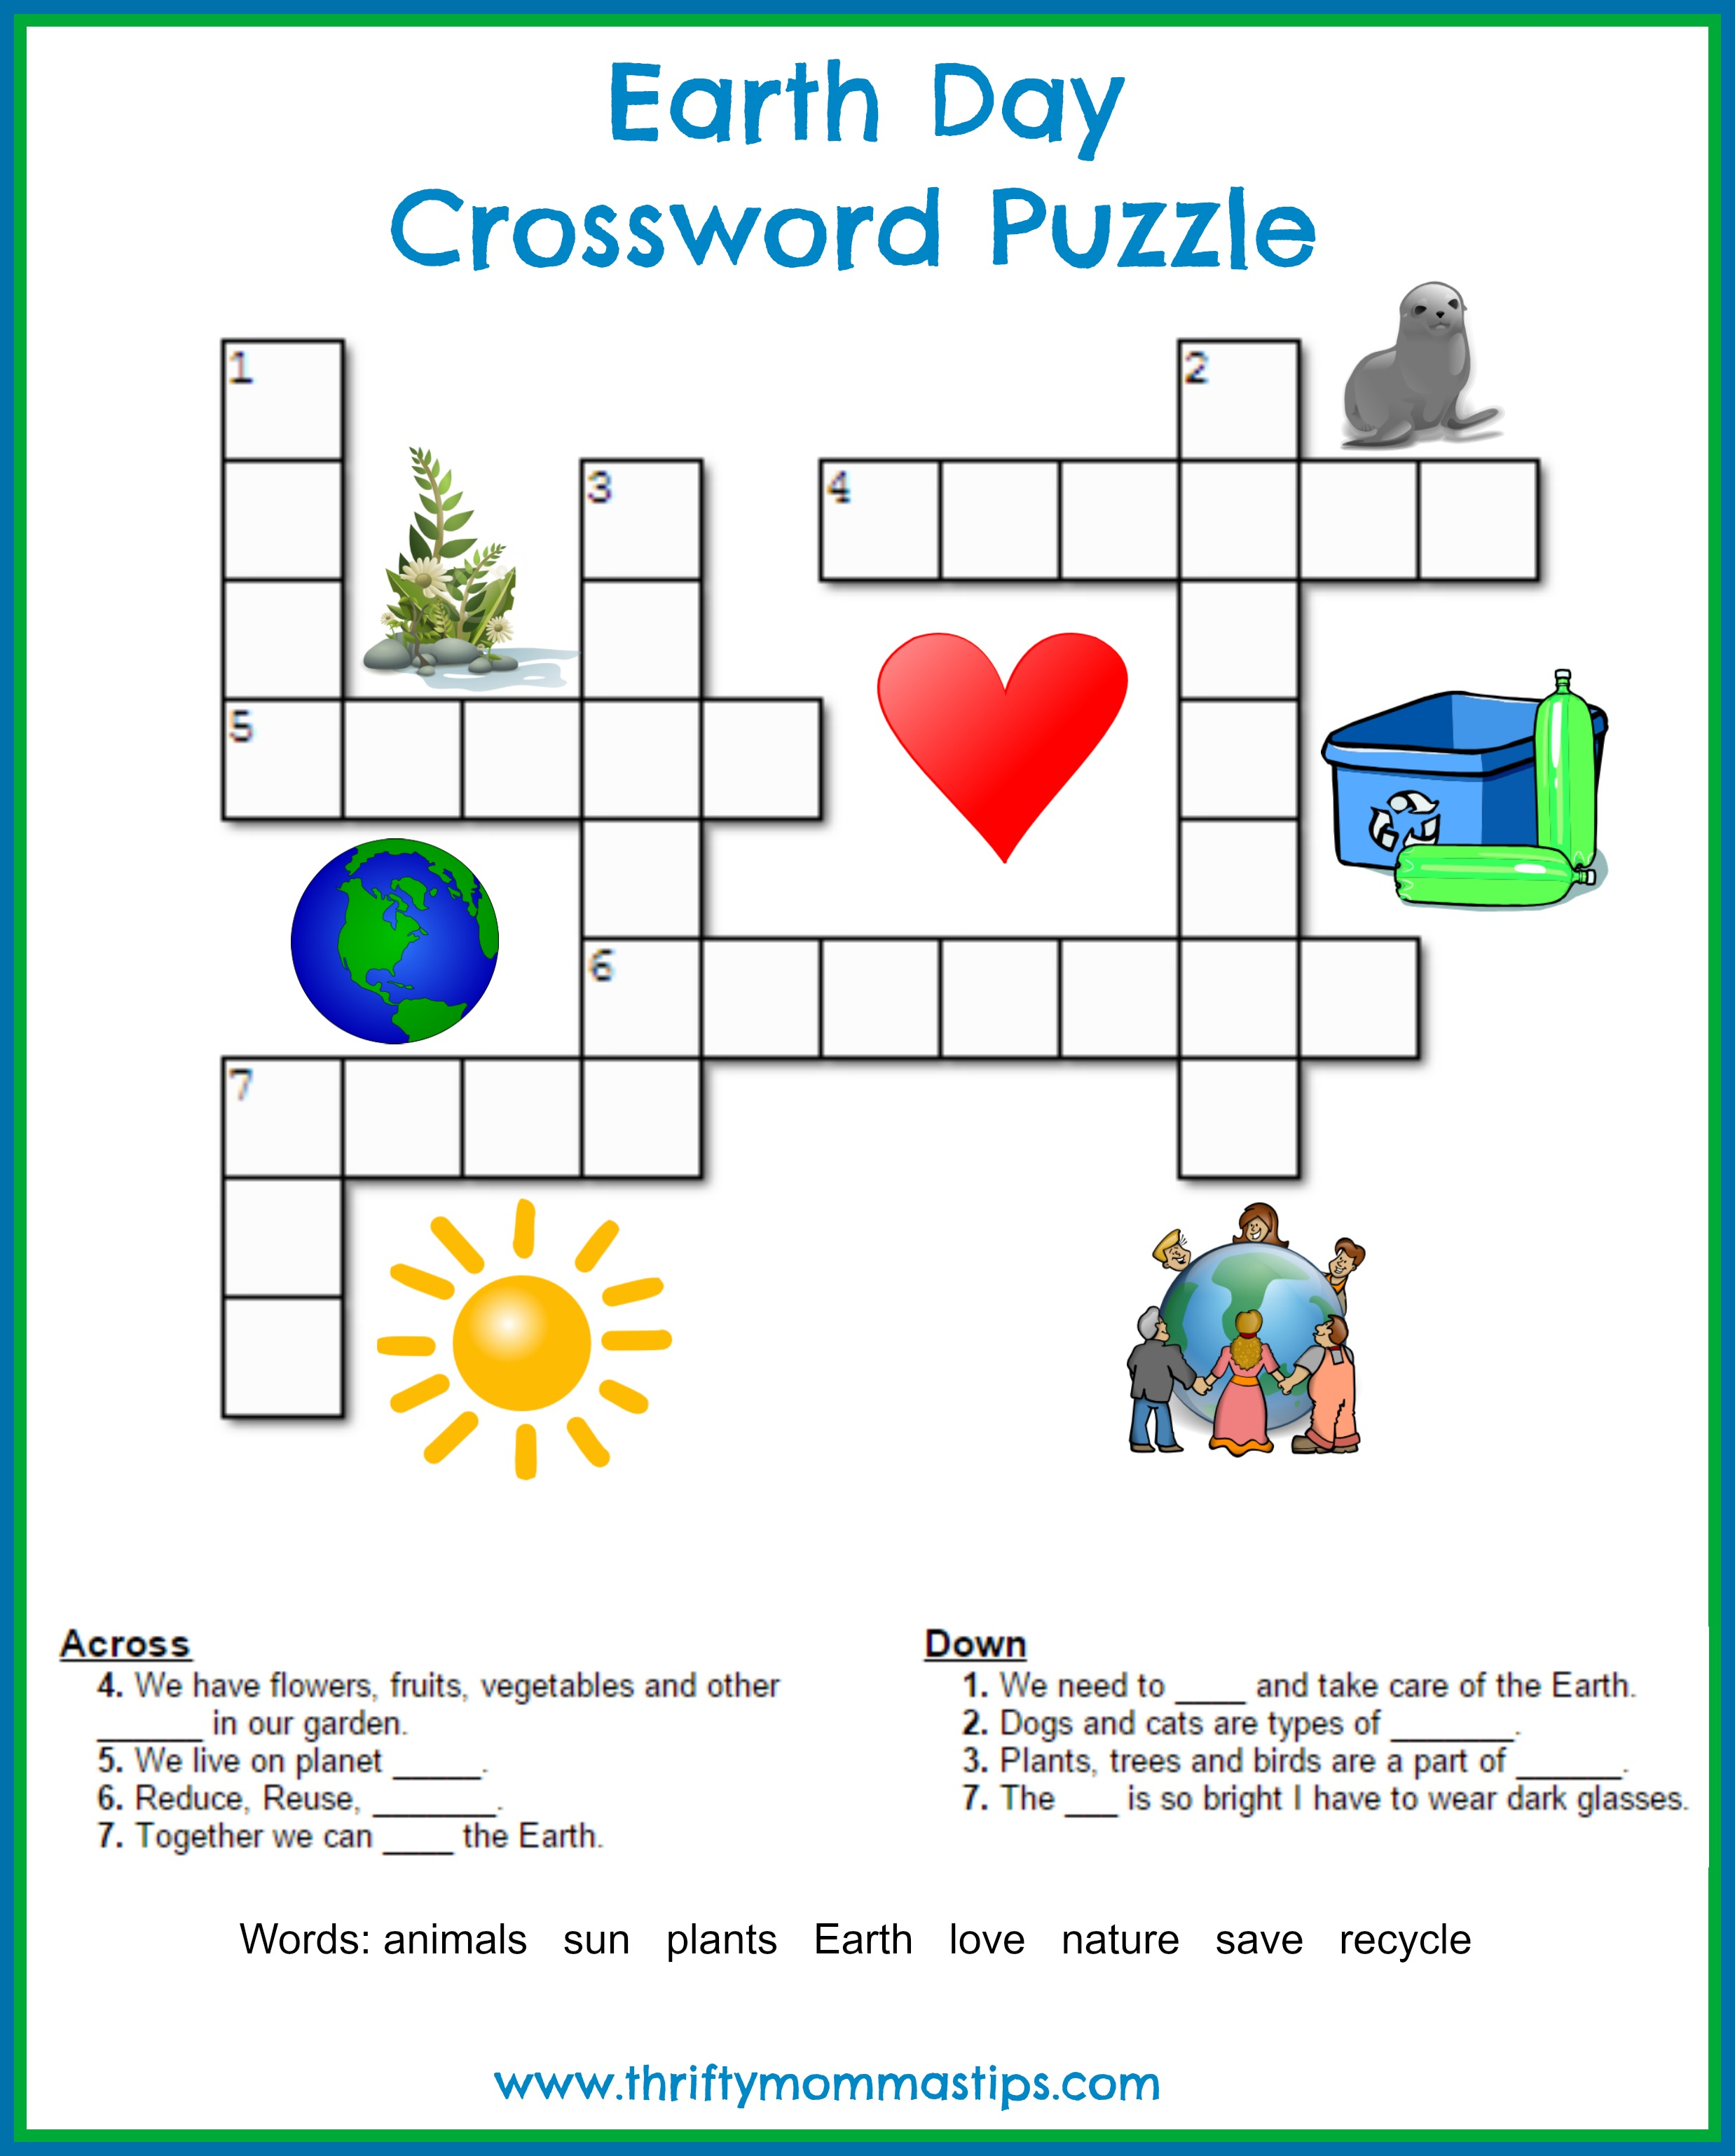 earth day crossword puzzle thrifty mommas tips. Black Bedroom Furniture Sets. Home Design Ideas